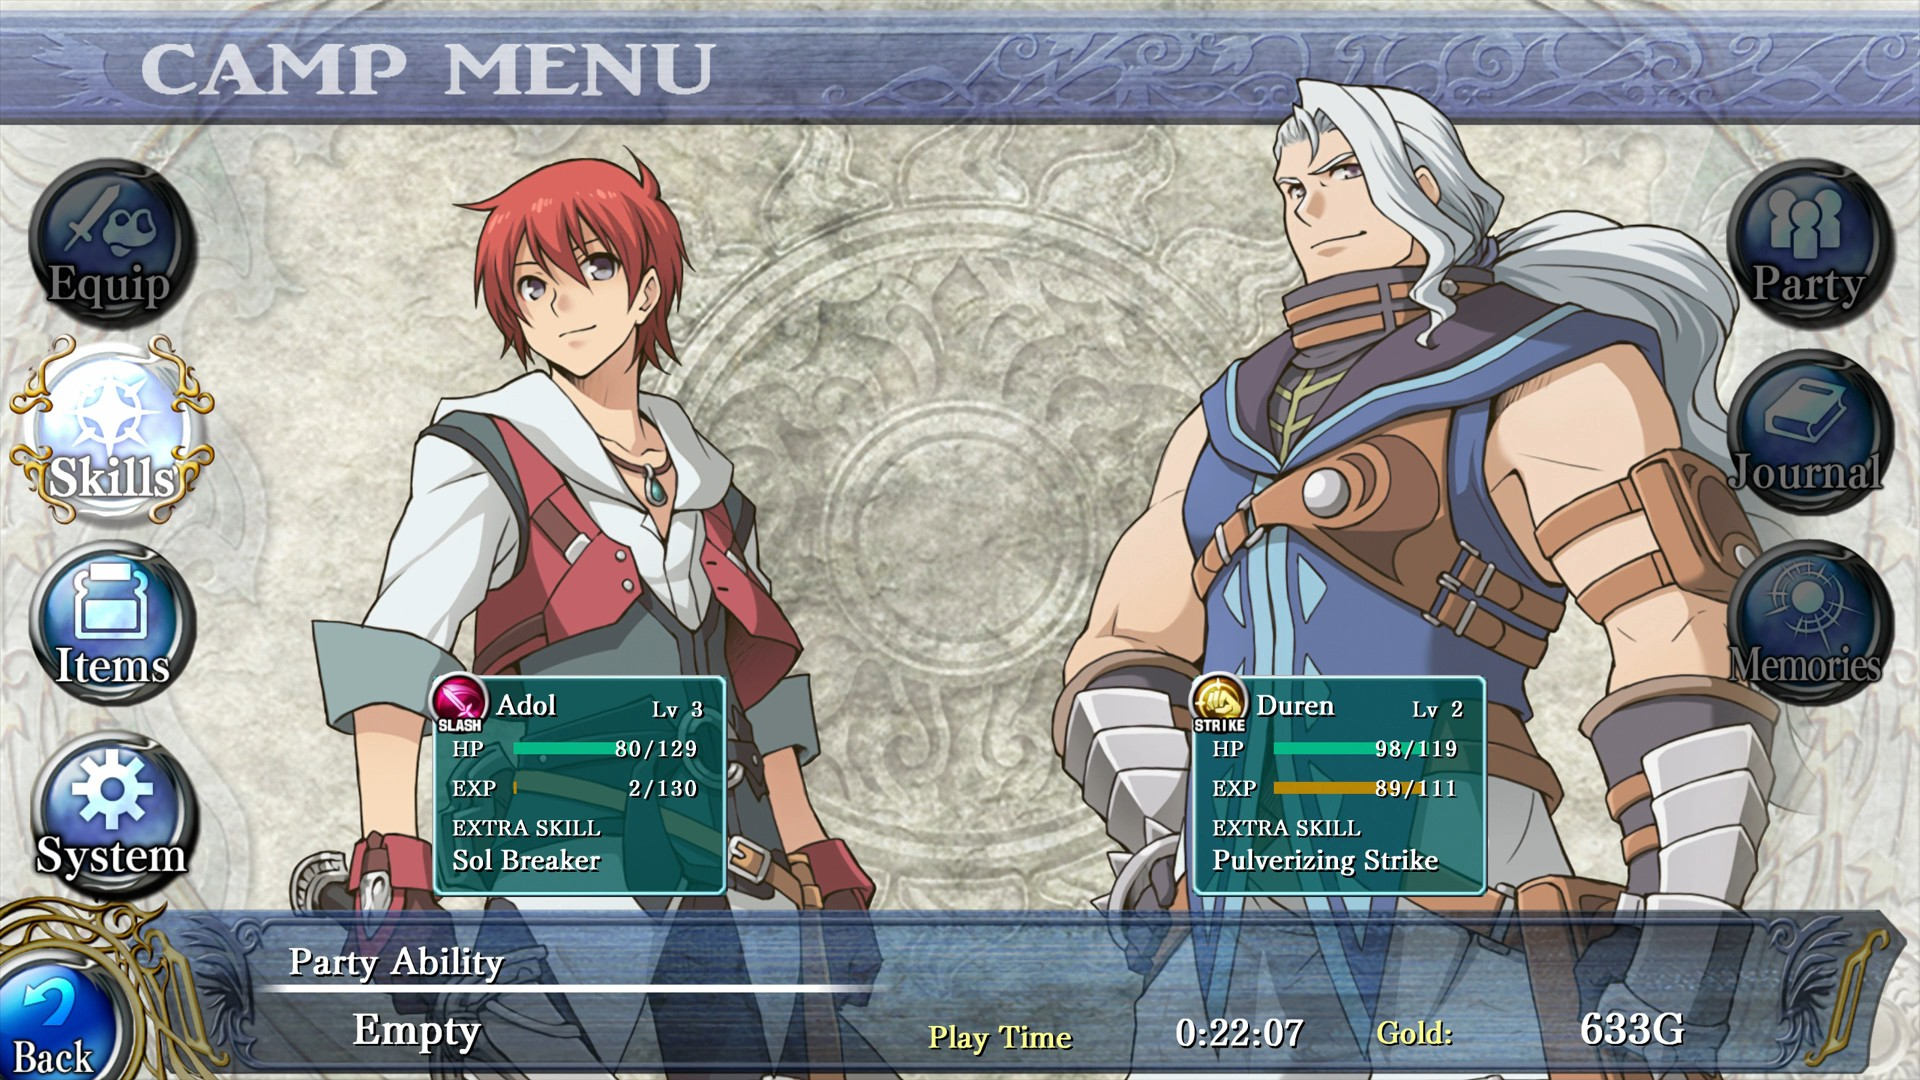 Ys Memories of Celceta Remaster, Ys: Memories of Celceta Remaster, price, gameplay, features, release date, pre-order, PS4, PlayStation 4, US, North America, Europe, EU, Xseed Games